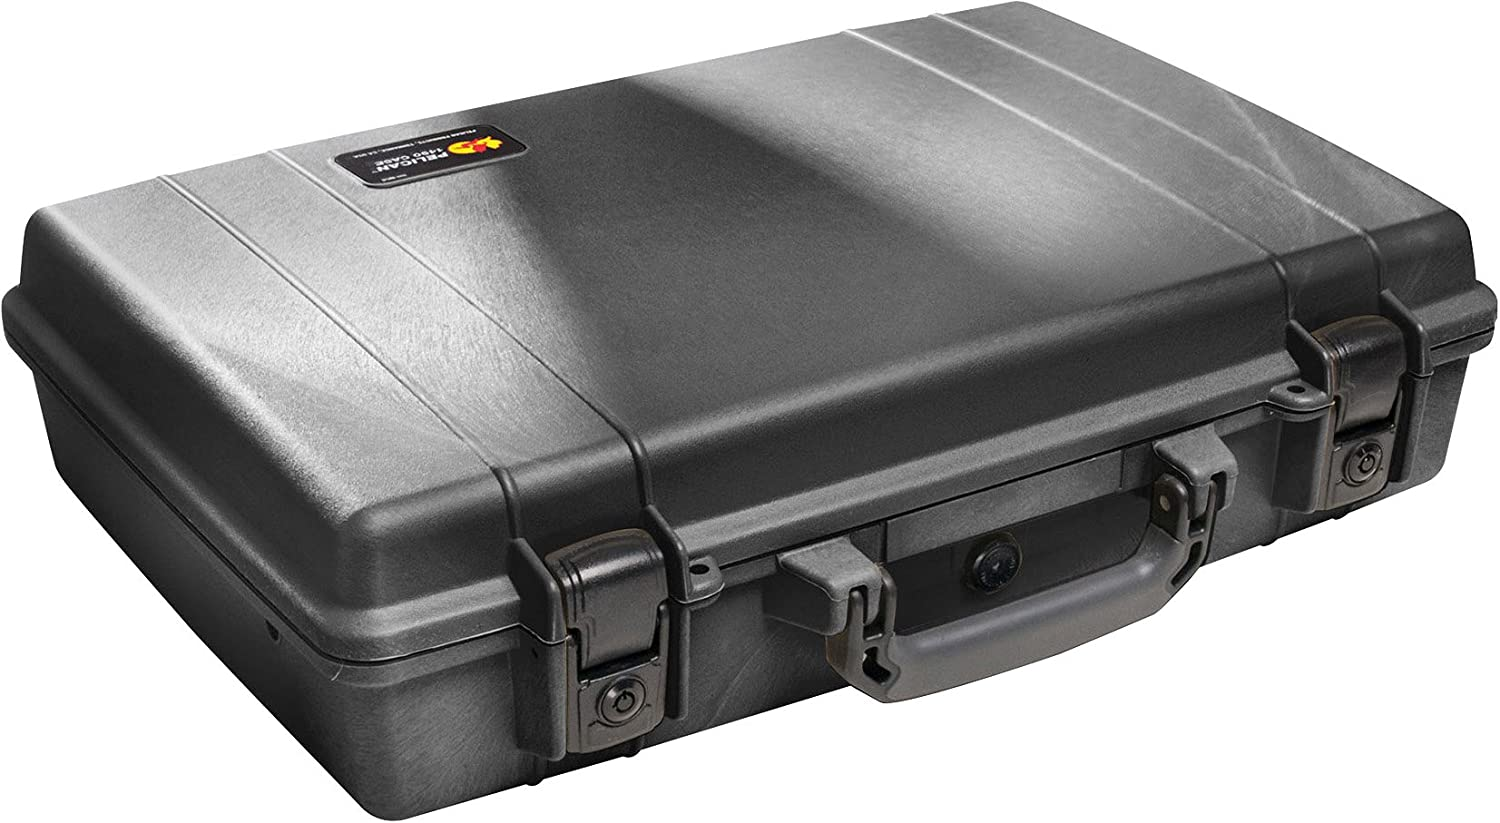 Pelican 1490 Laptop Case With Foam (Black)